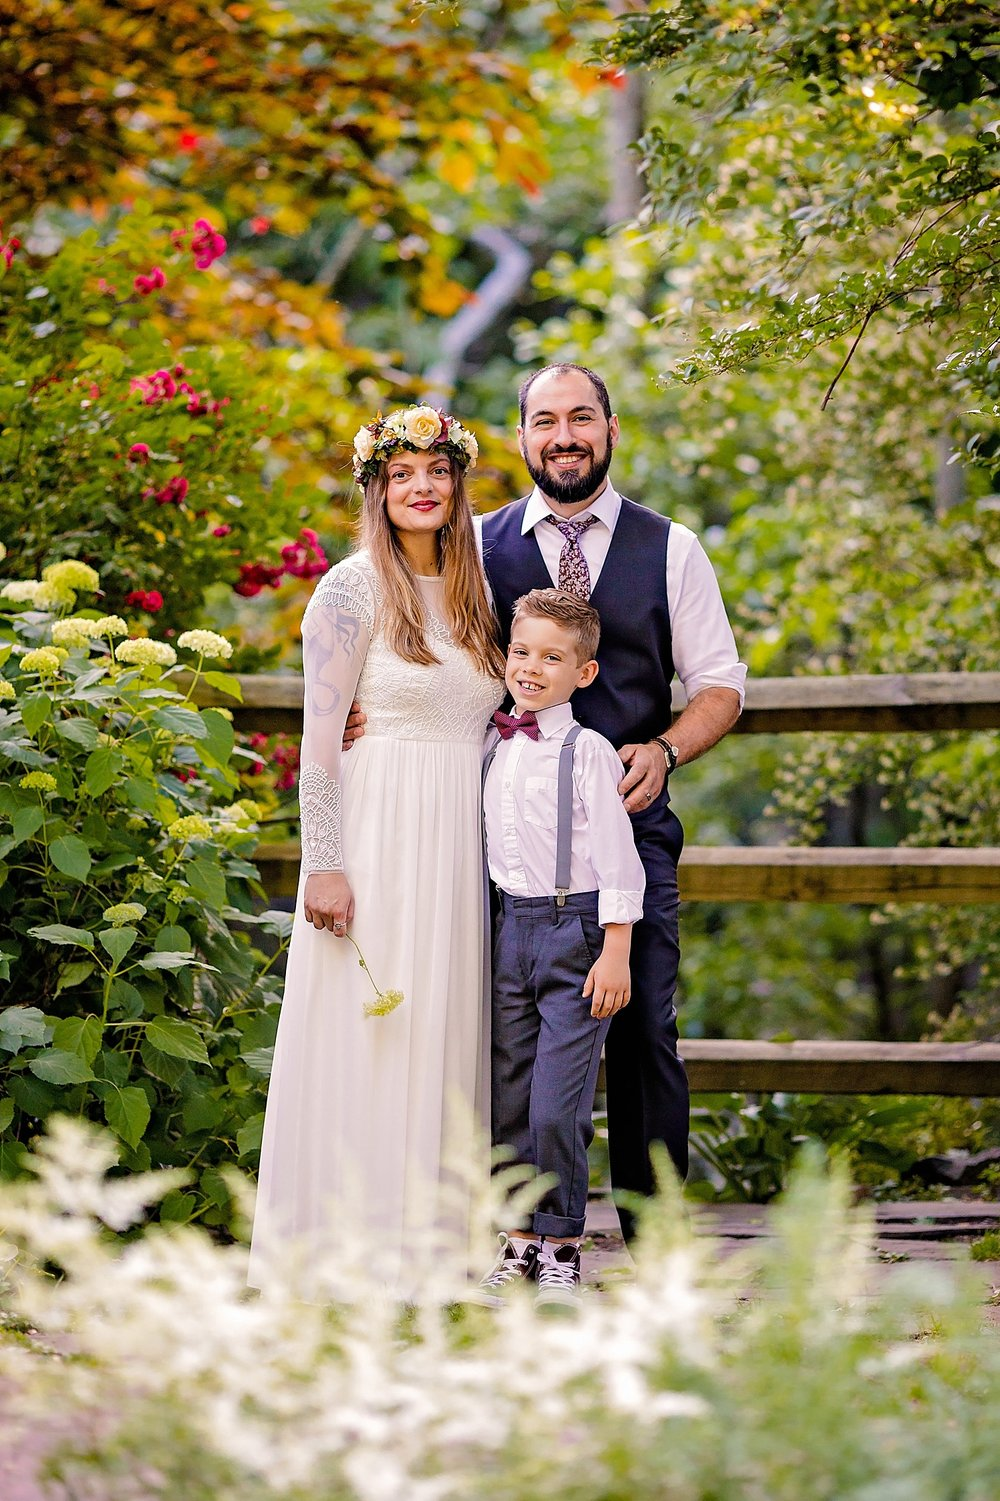 St. Peter's Pete's Village Pennsylvania wedding family portrait photographer